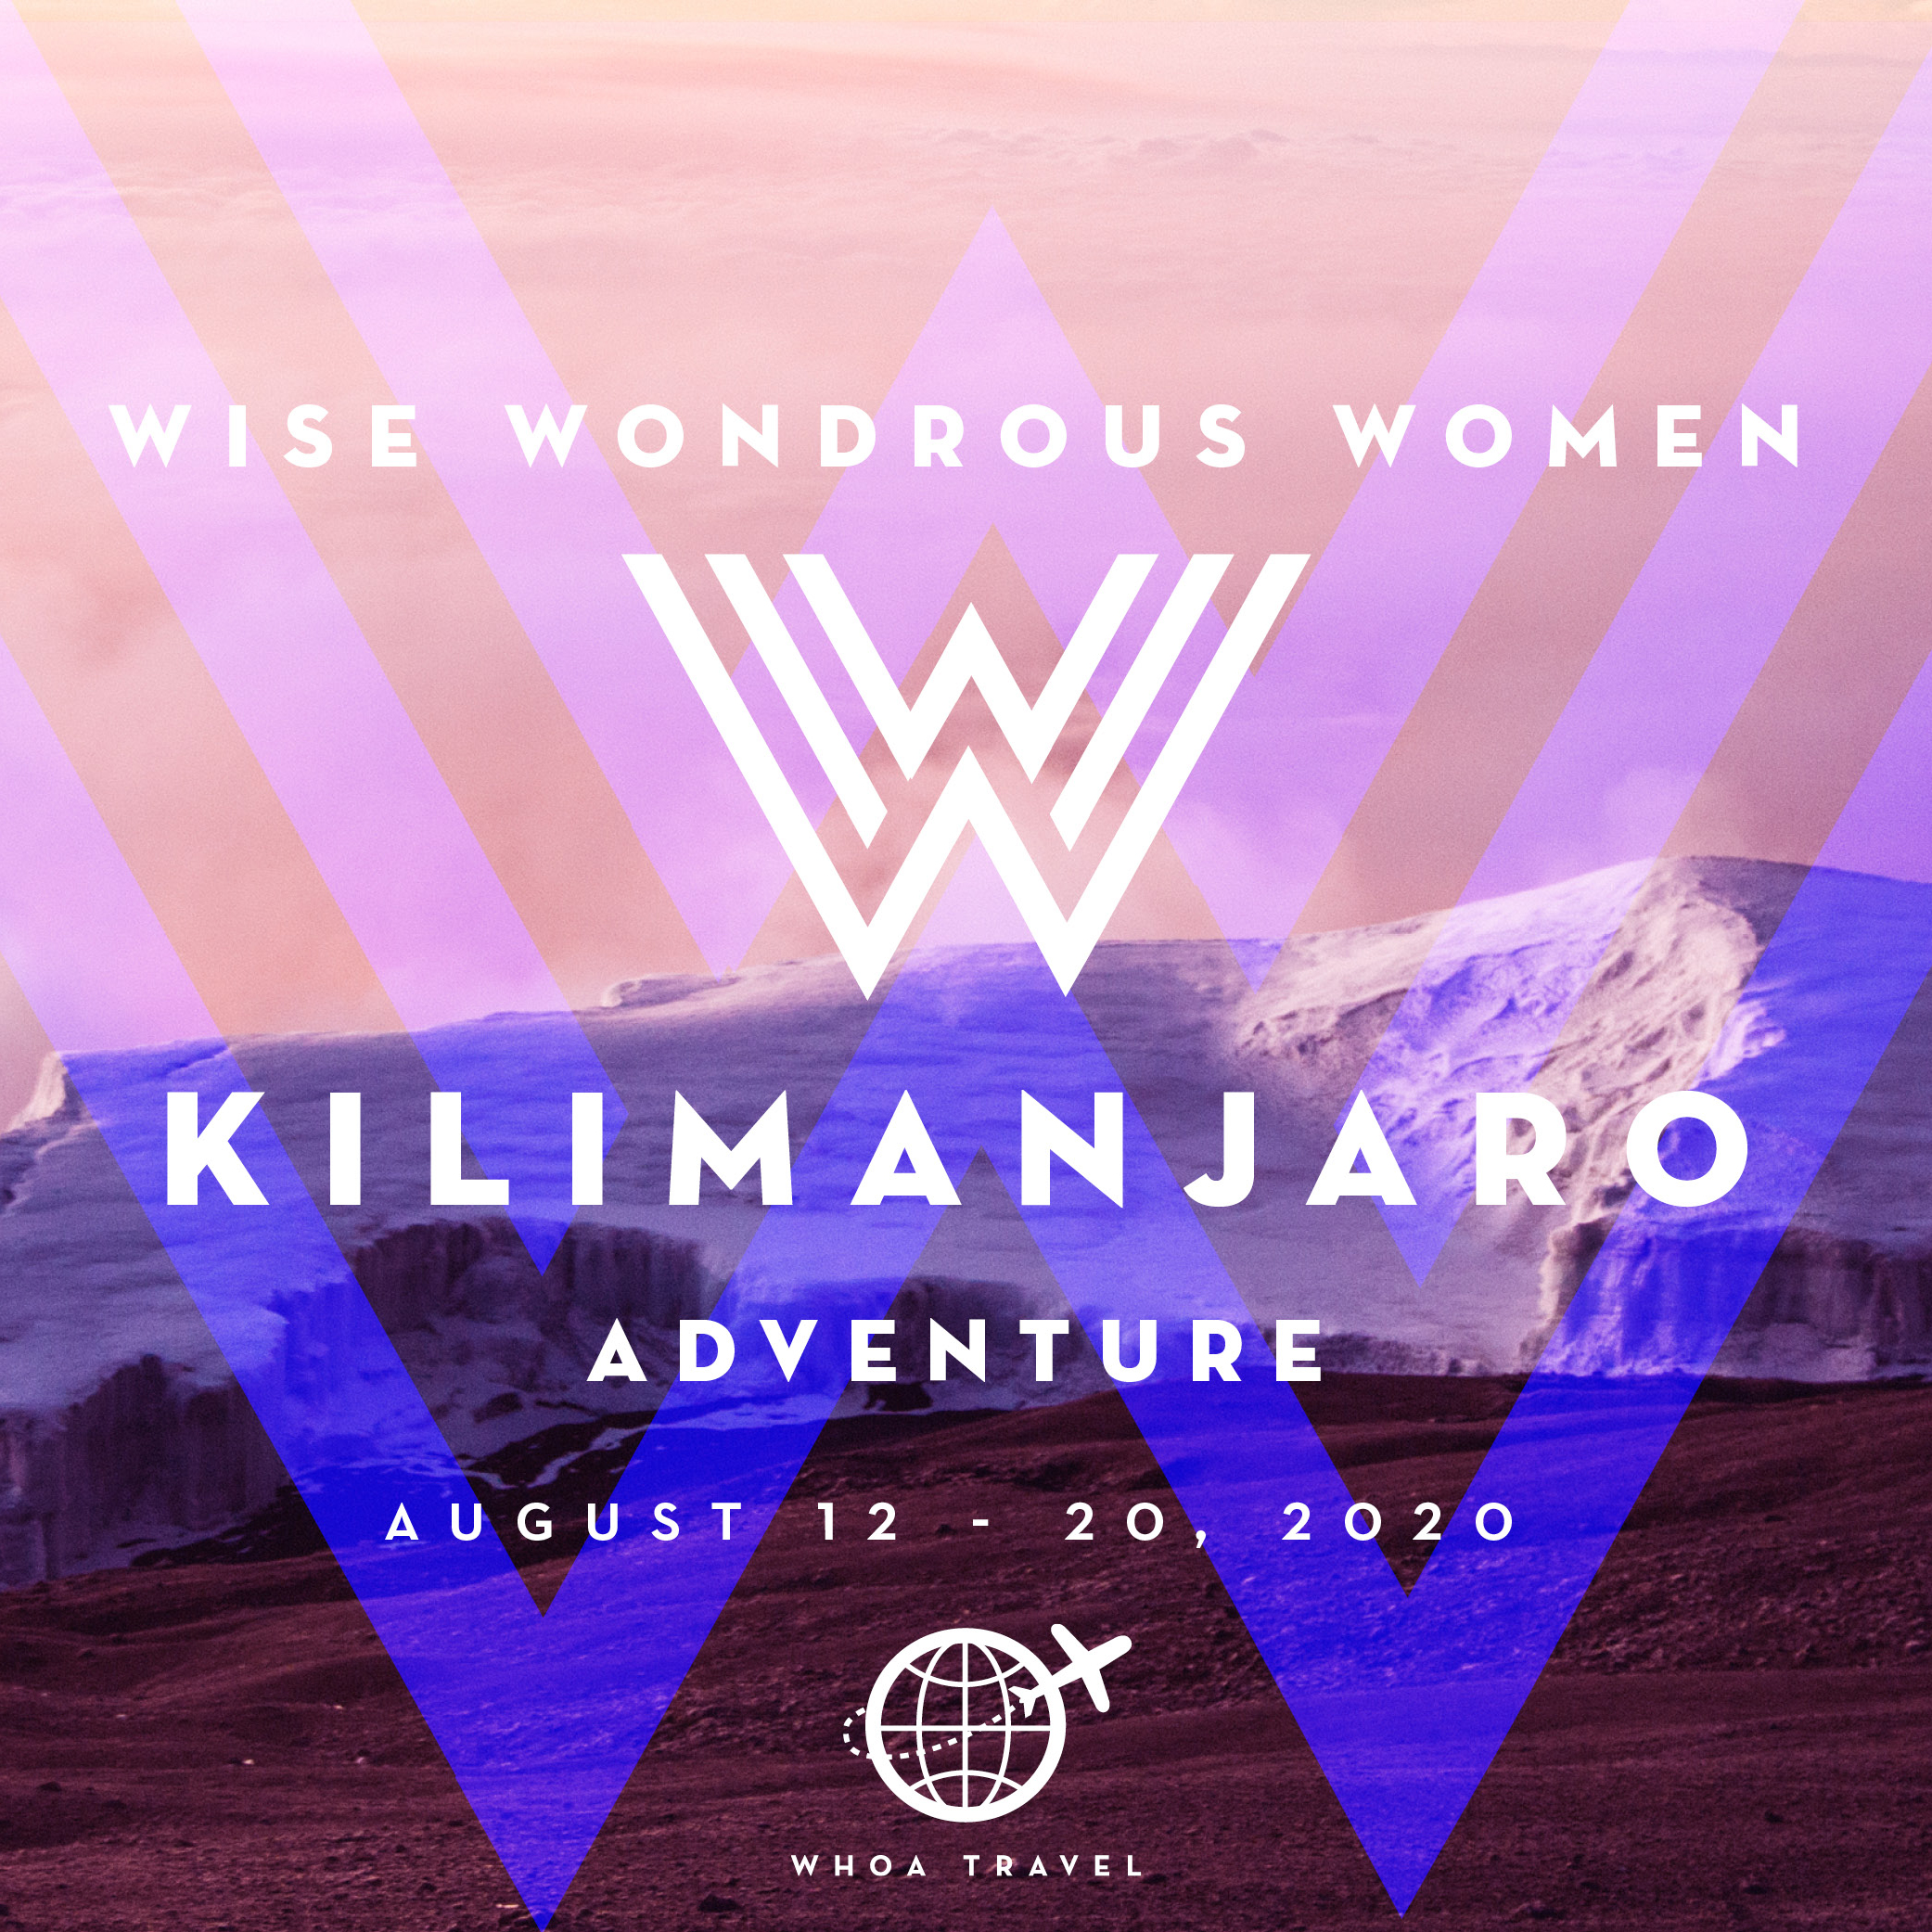 AUG 12 - 2o - 2020WISE WONDROUS WOMEN50+ ADVENTURETrek the tallest mountain in Africa with other adventurous, young at heart 50+ women